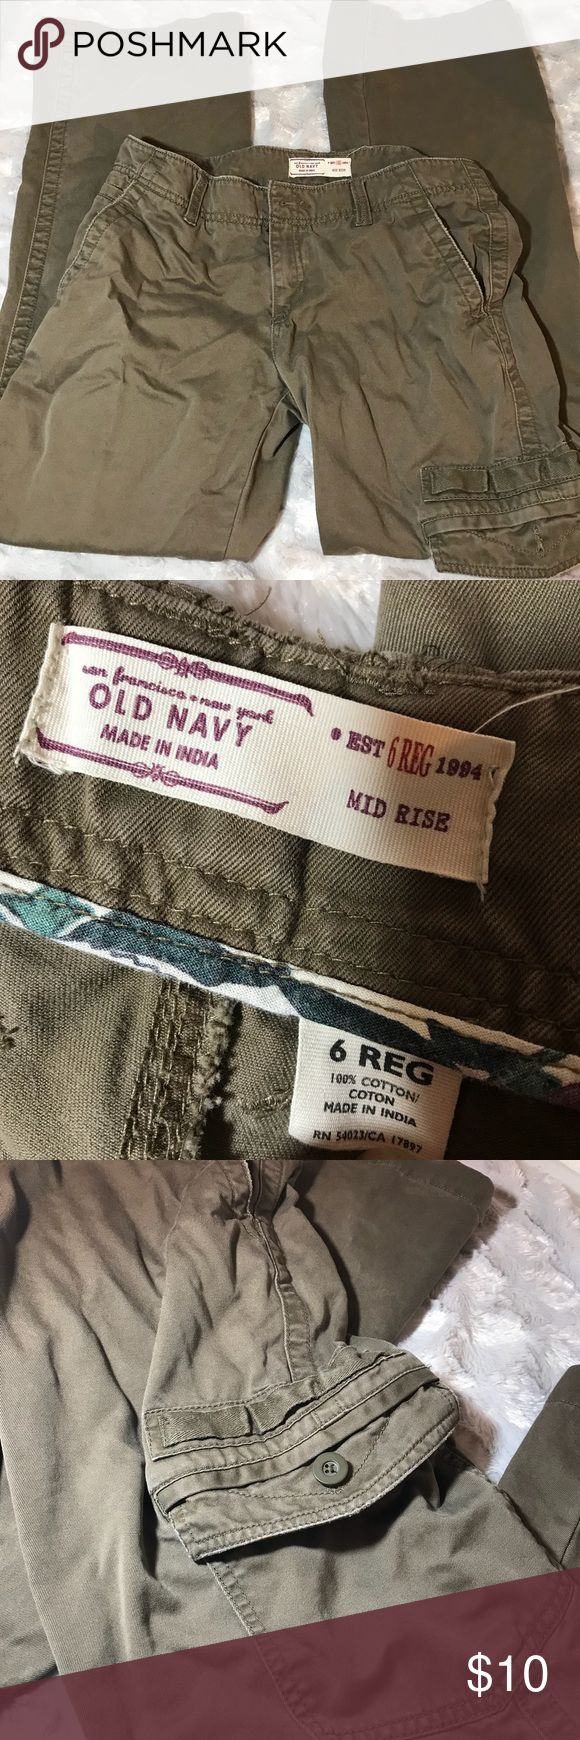 Old navy cargo pants. Military. Left leg pocket. Old navy tan cargo pants. Size 6 reg. Military vibe. Left leg pocket. Old Navy Pants